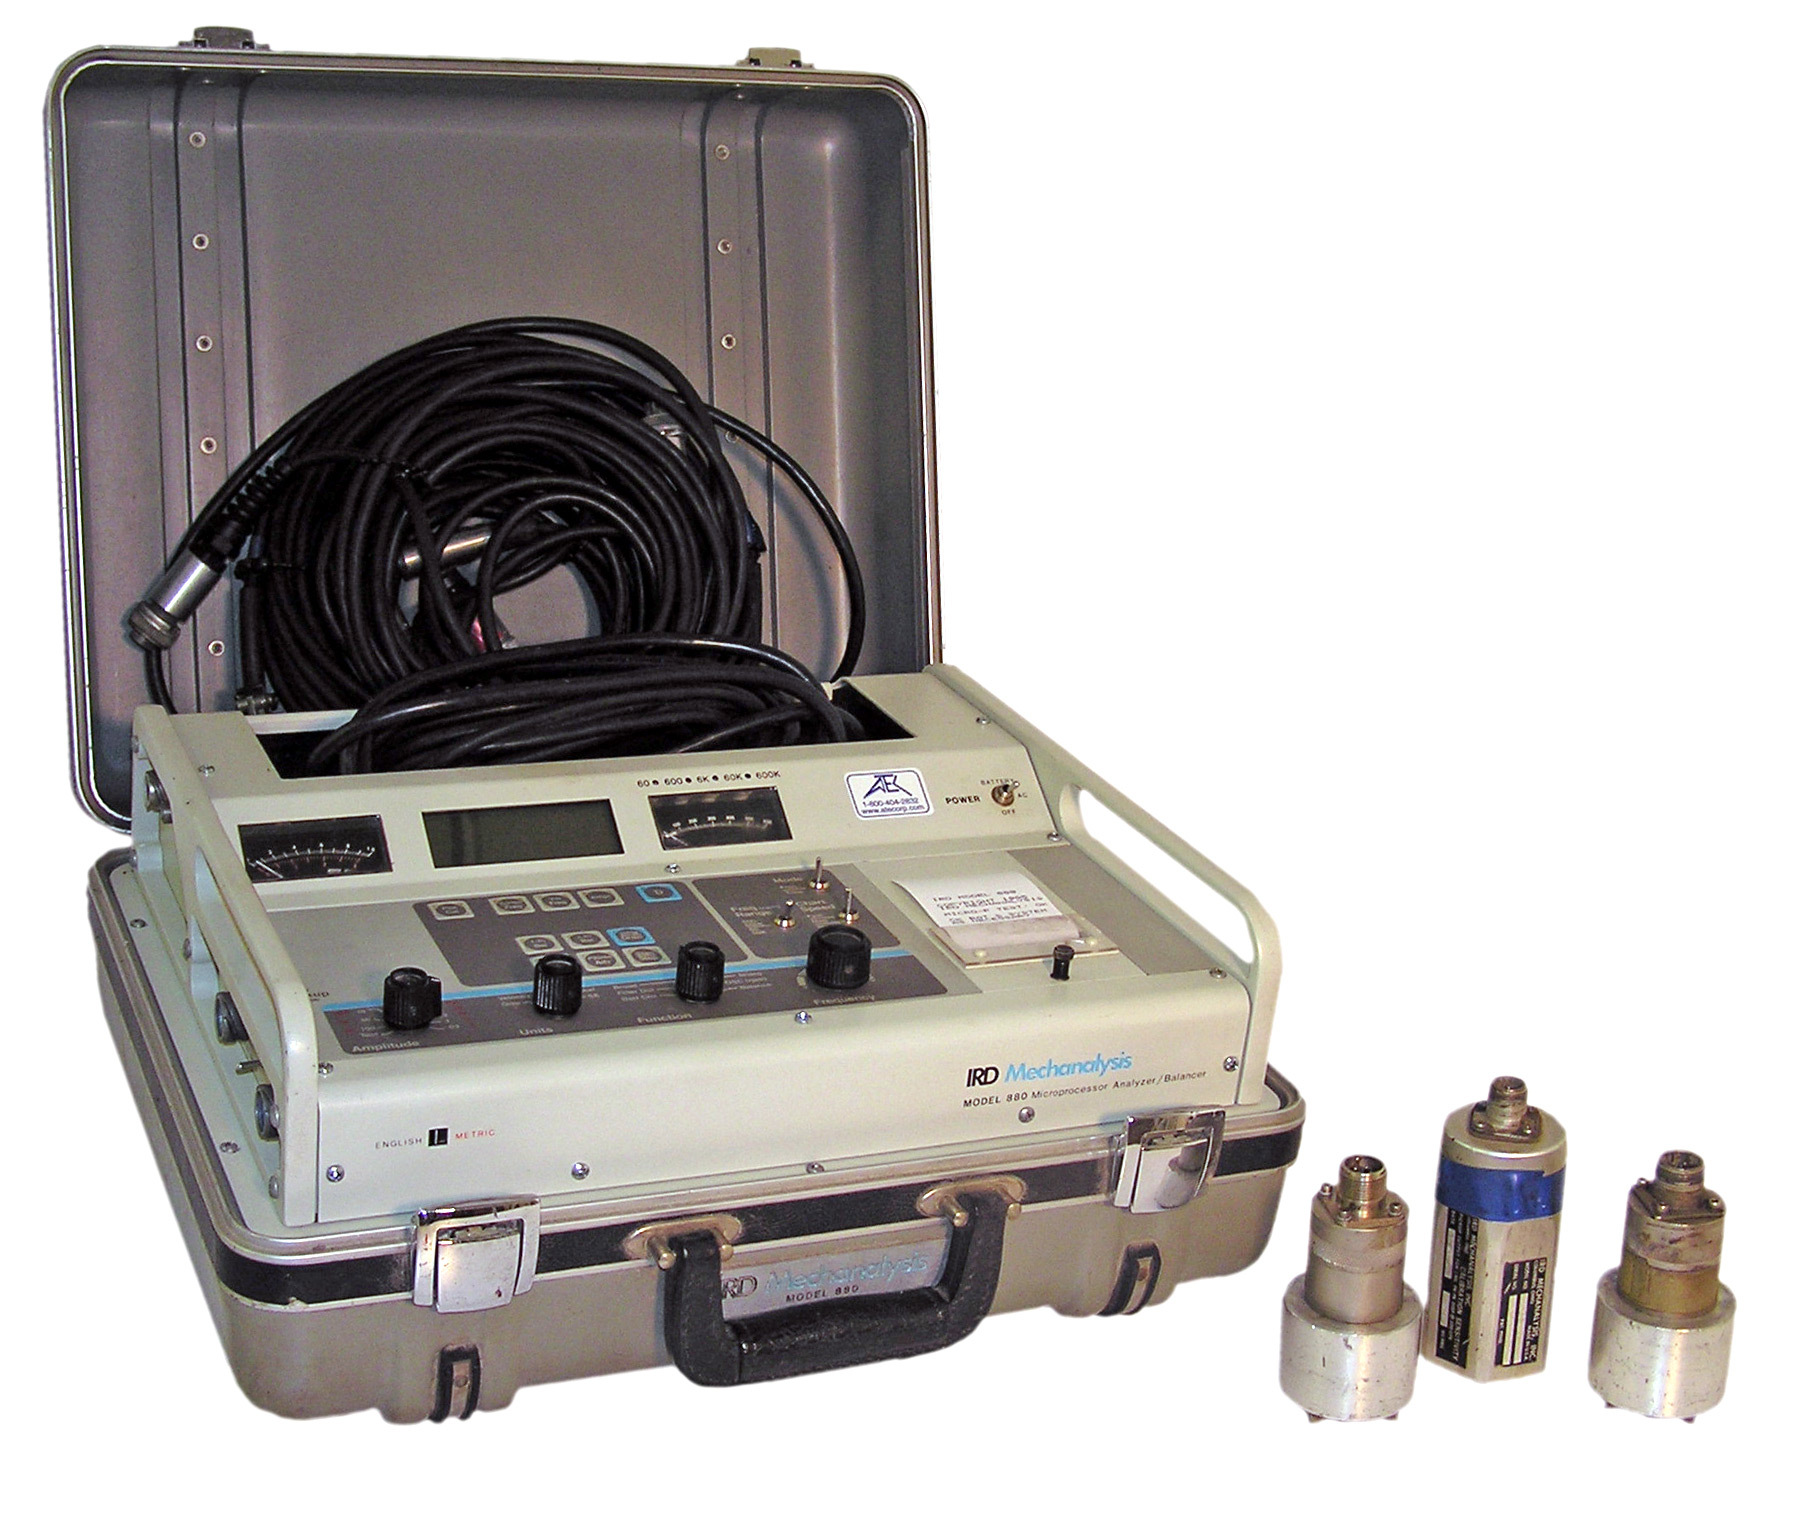 IRD 880 Portable Vibration Analyzer/Balancer